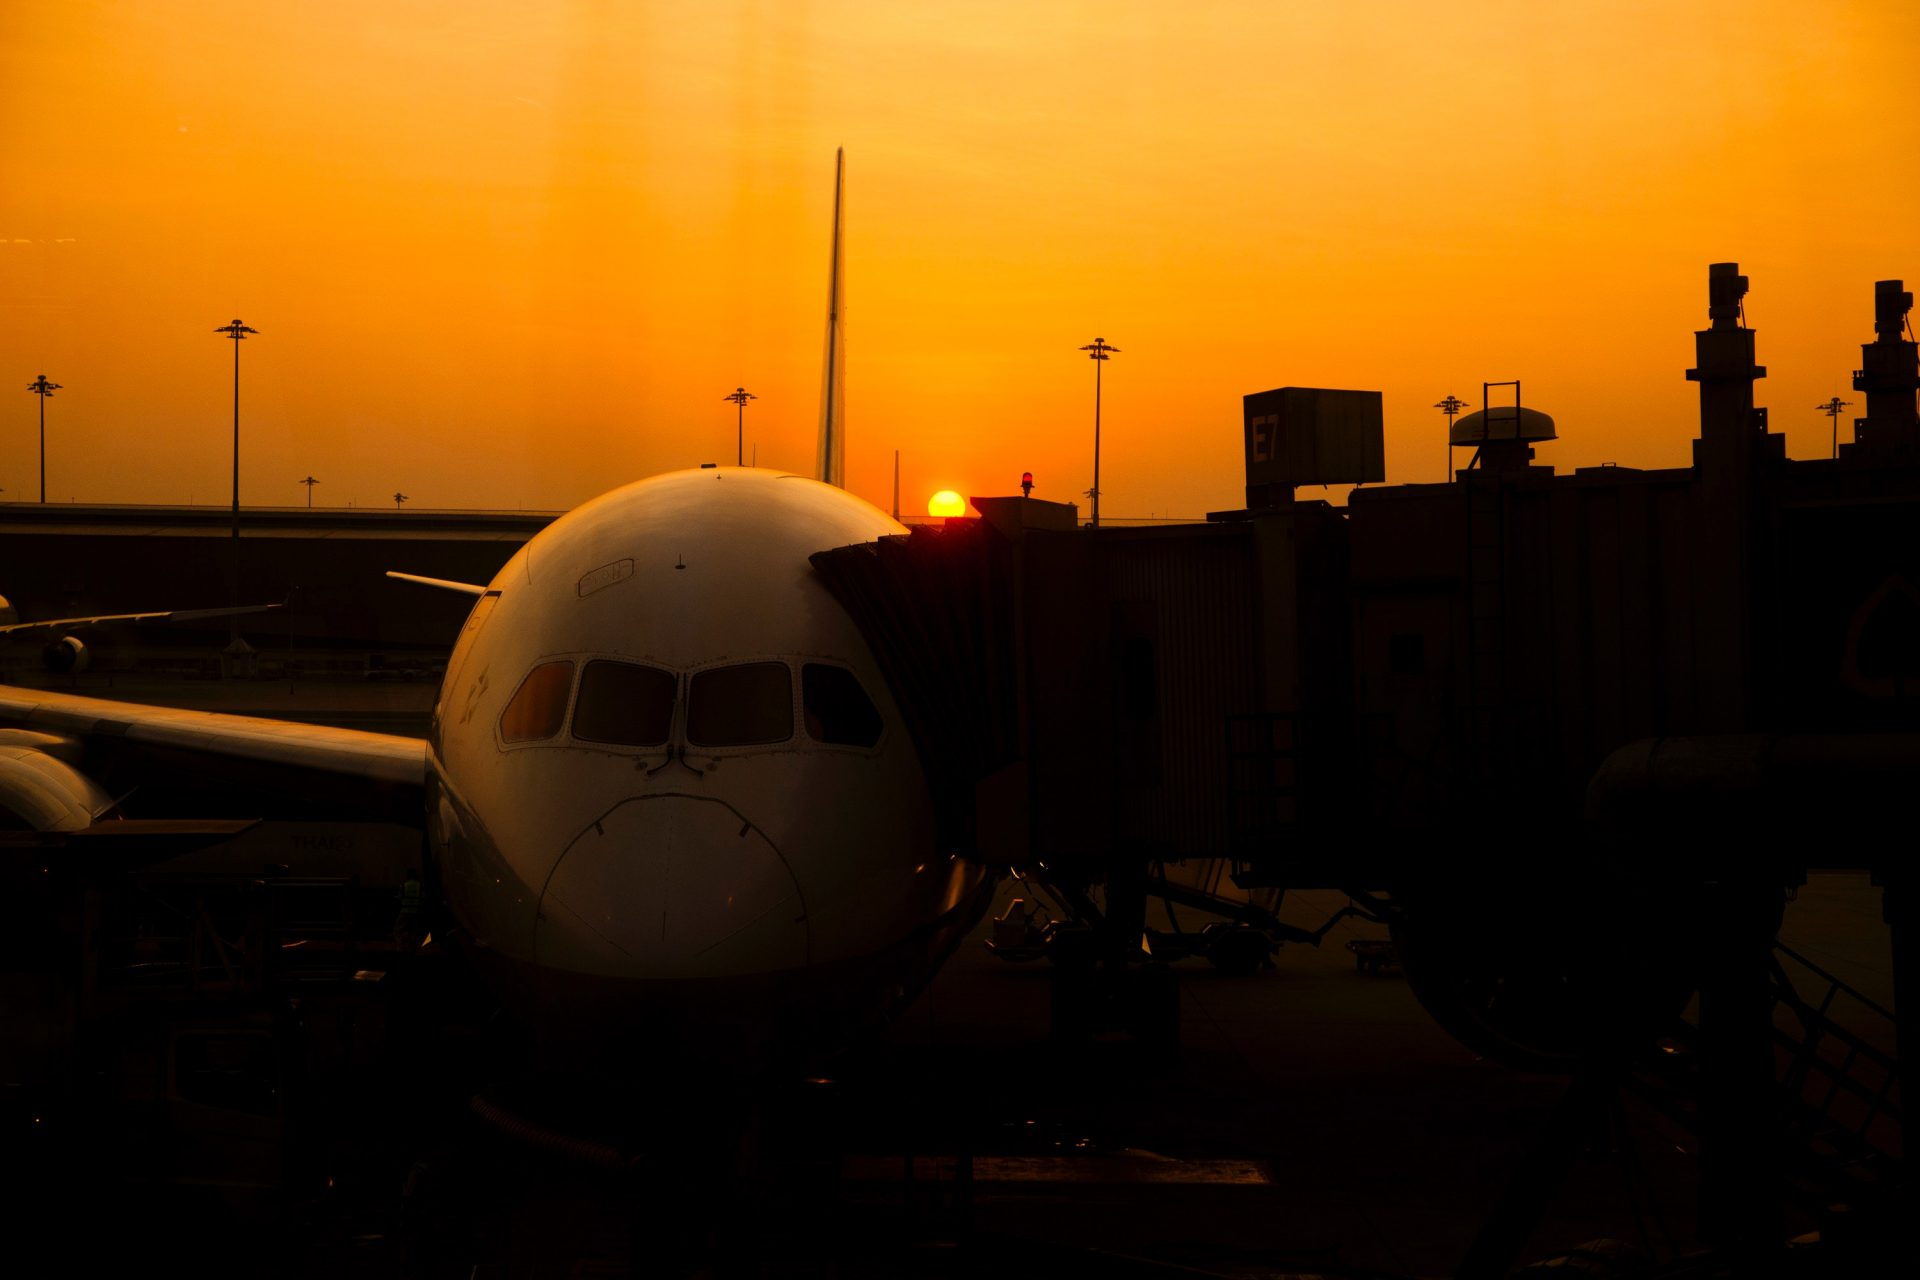 Delayed aircraft parked at gate with orange sky and sun setting in the background